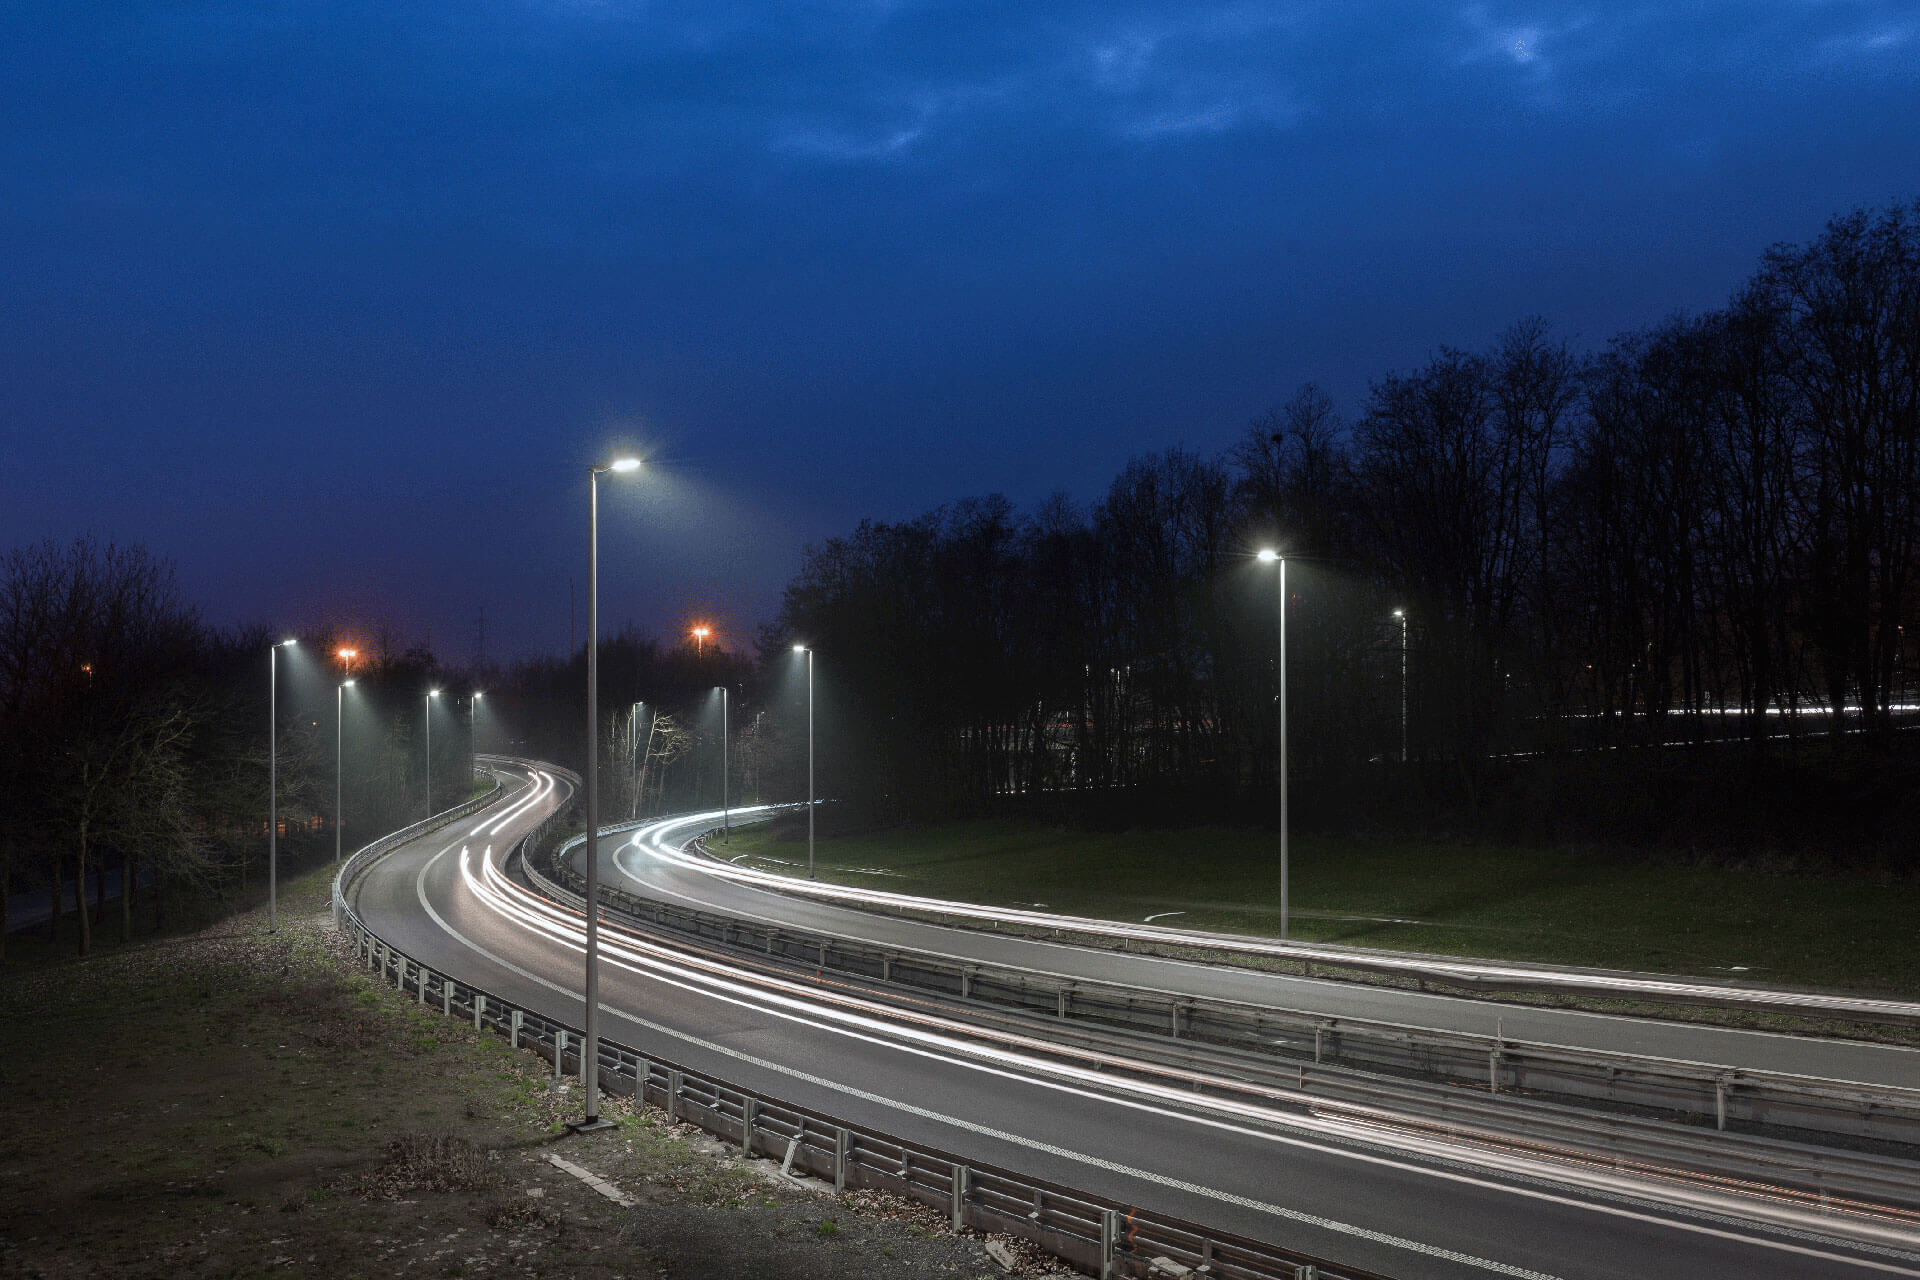 Ampera and Owlet control system improve safety while reducing operating costs for this traffic hot-spot